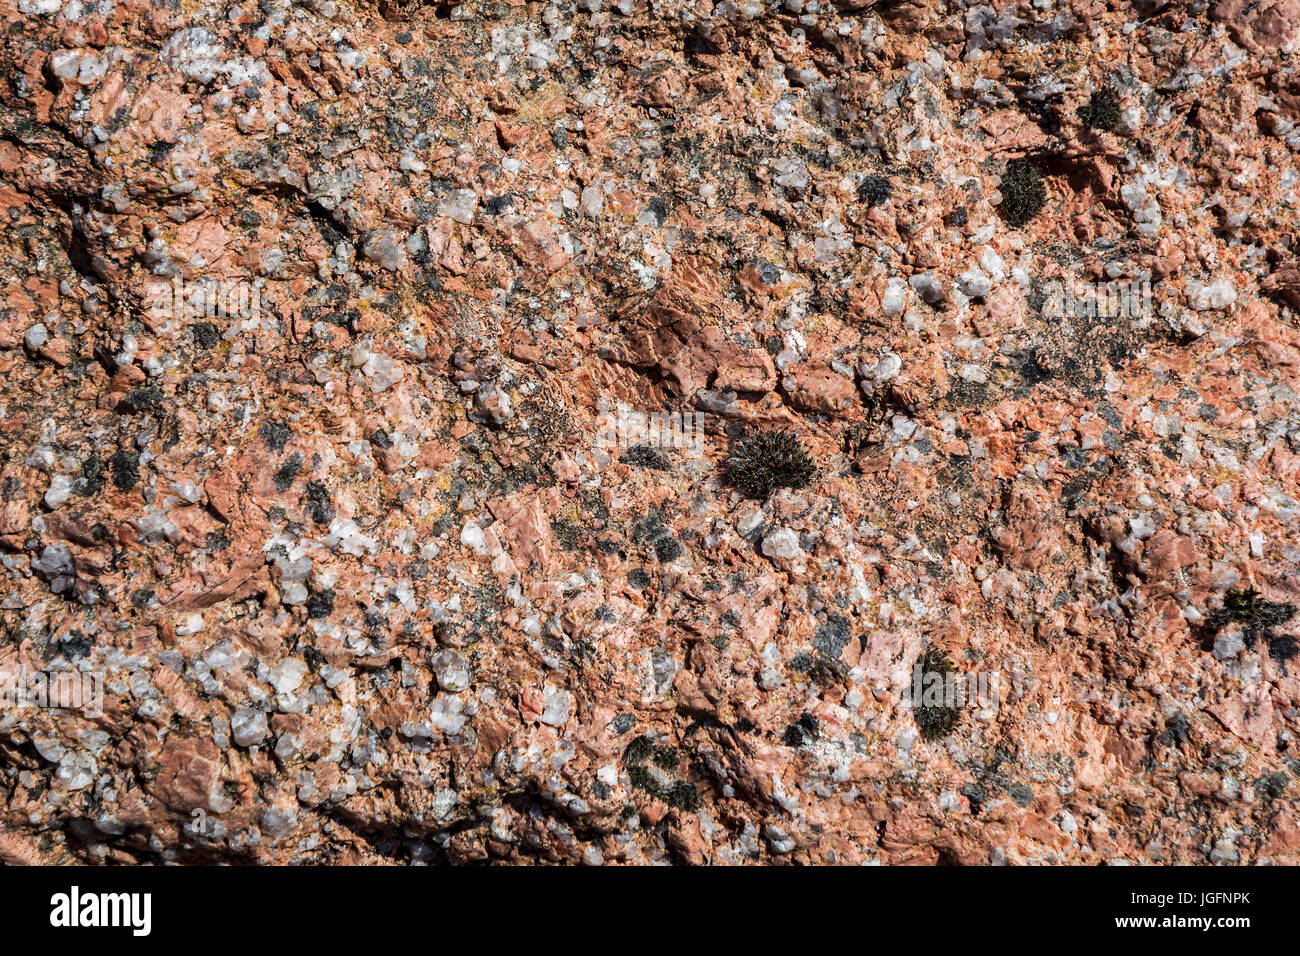 Red granite, close up of igneous rock showing grain structure and texture - Stock Image